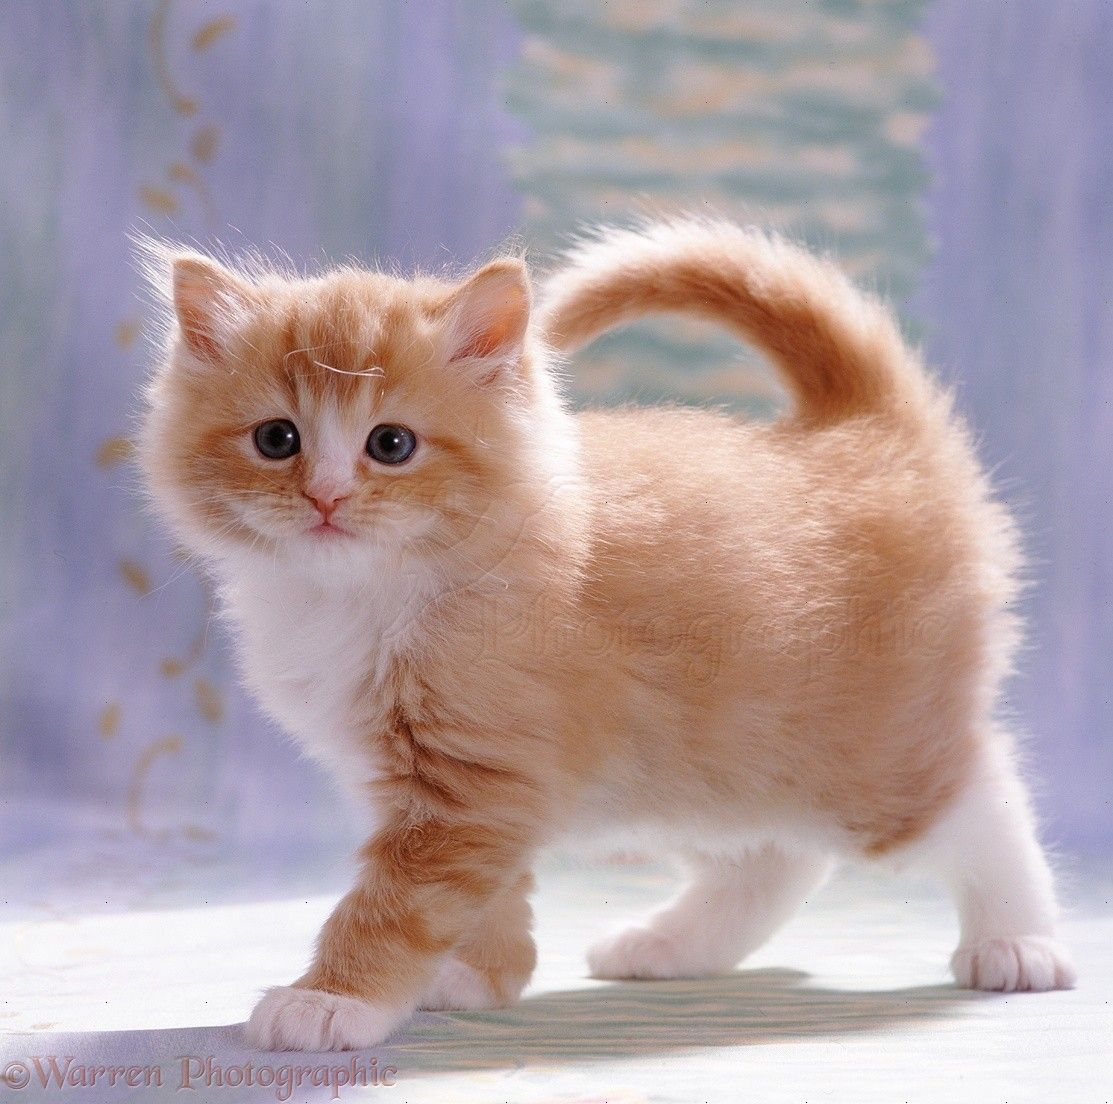 A Cute Ginger And White Kitten She Looks Like Mittens Did When We